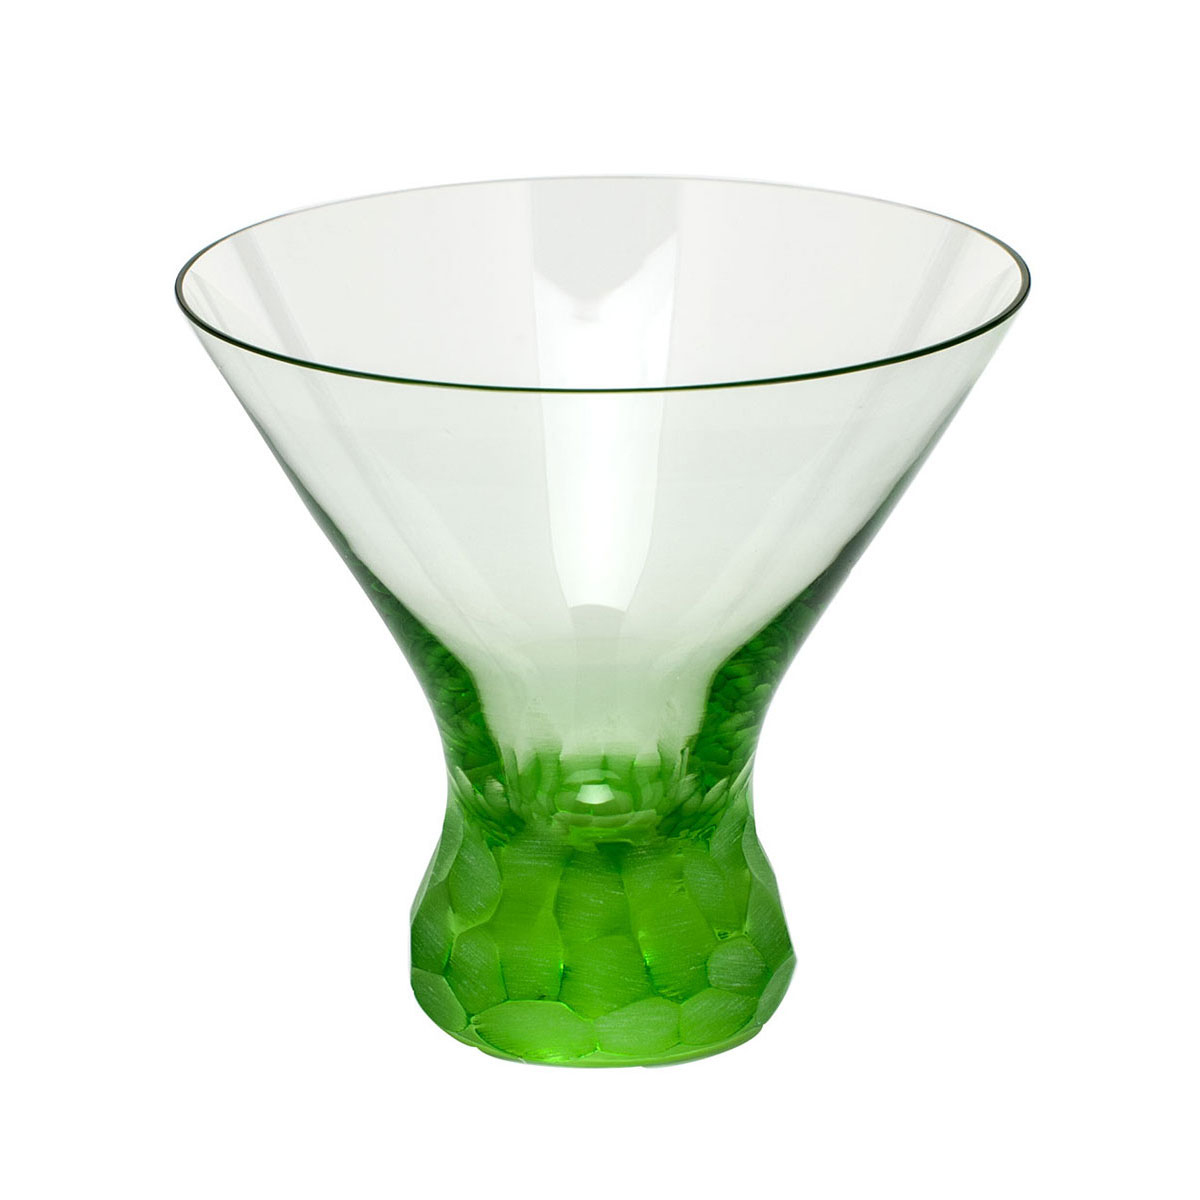 Moser Crystal Pebbles Stemless Martini Glass, Ocean Green, Single